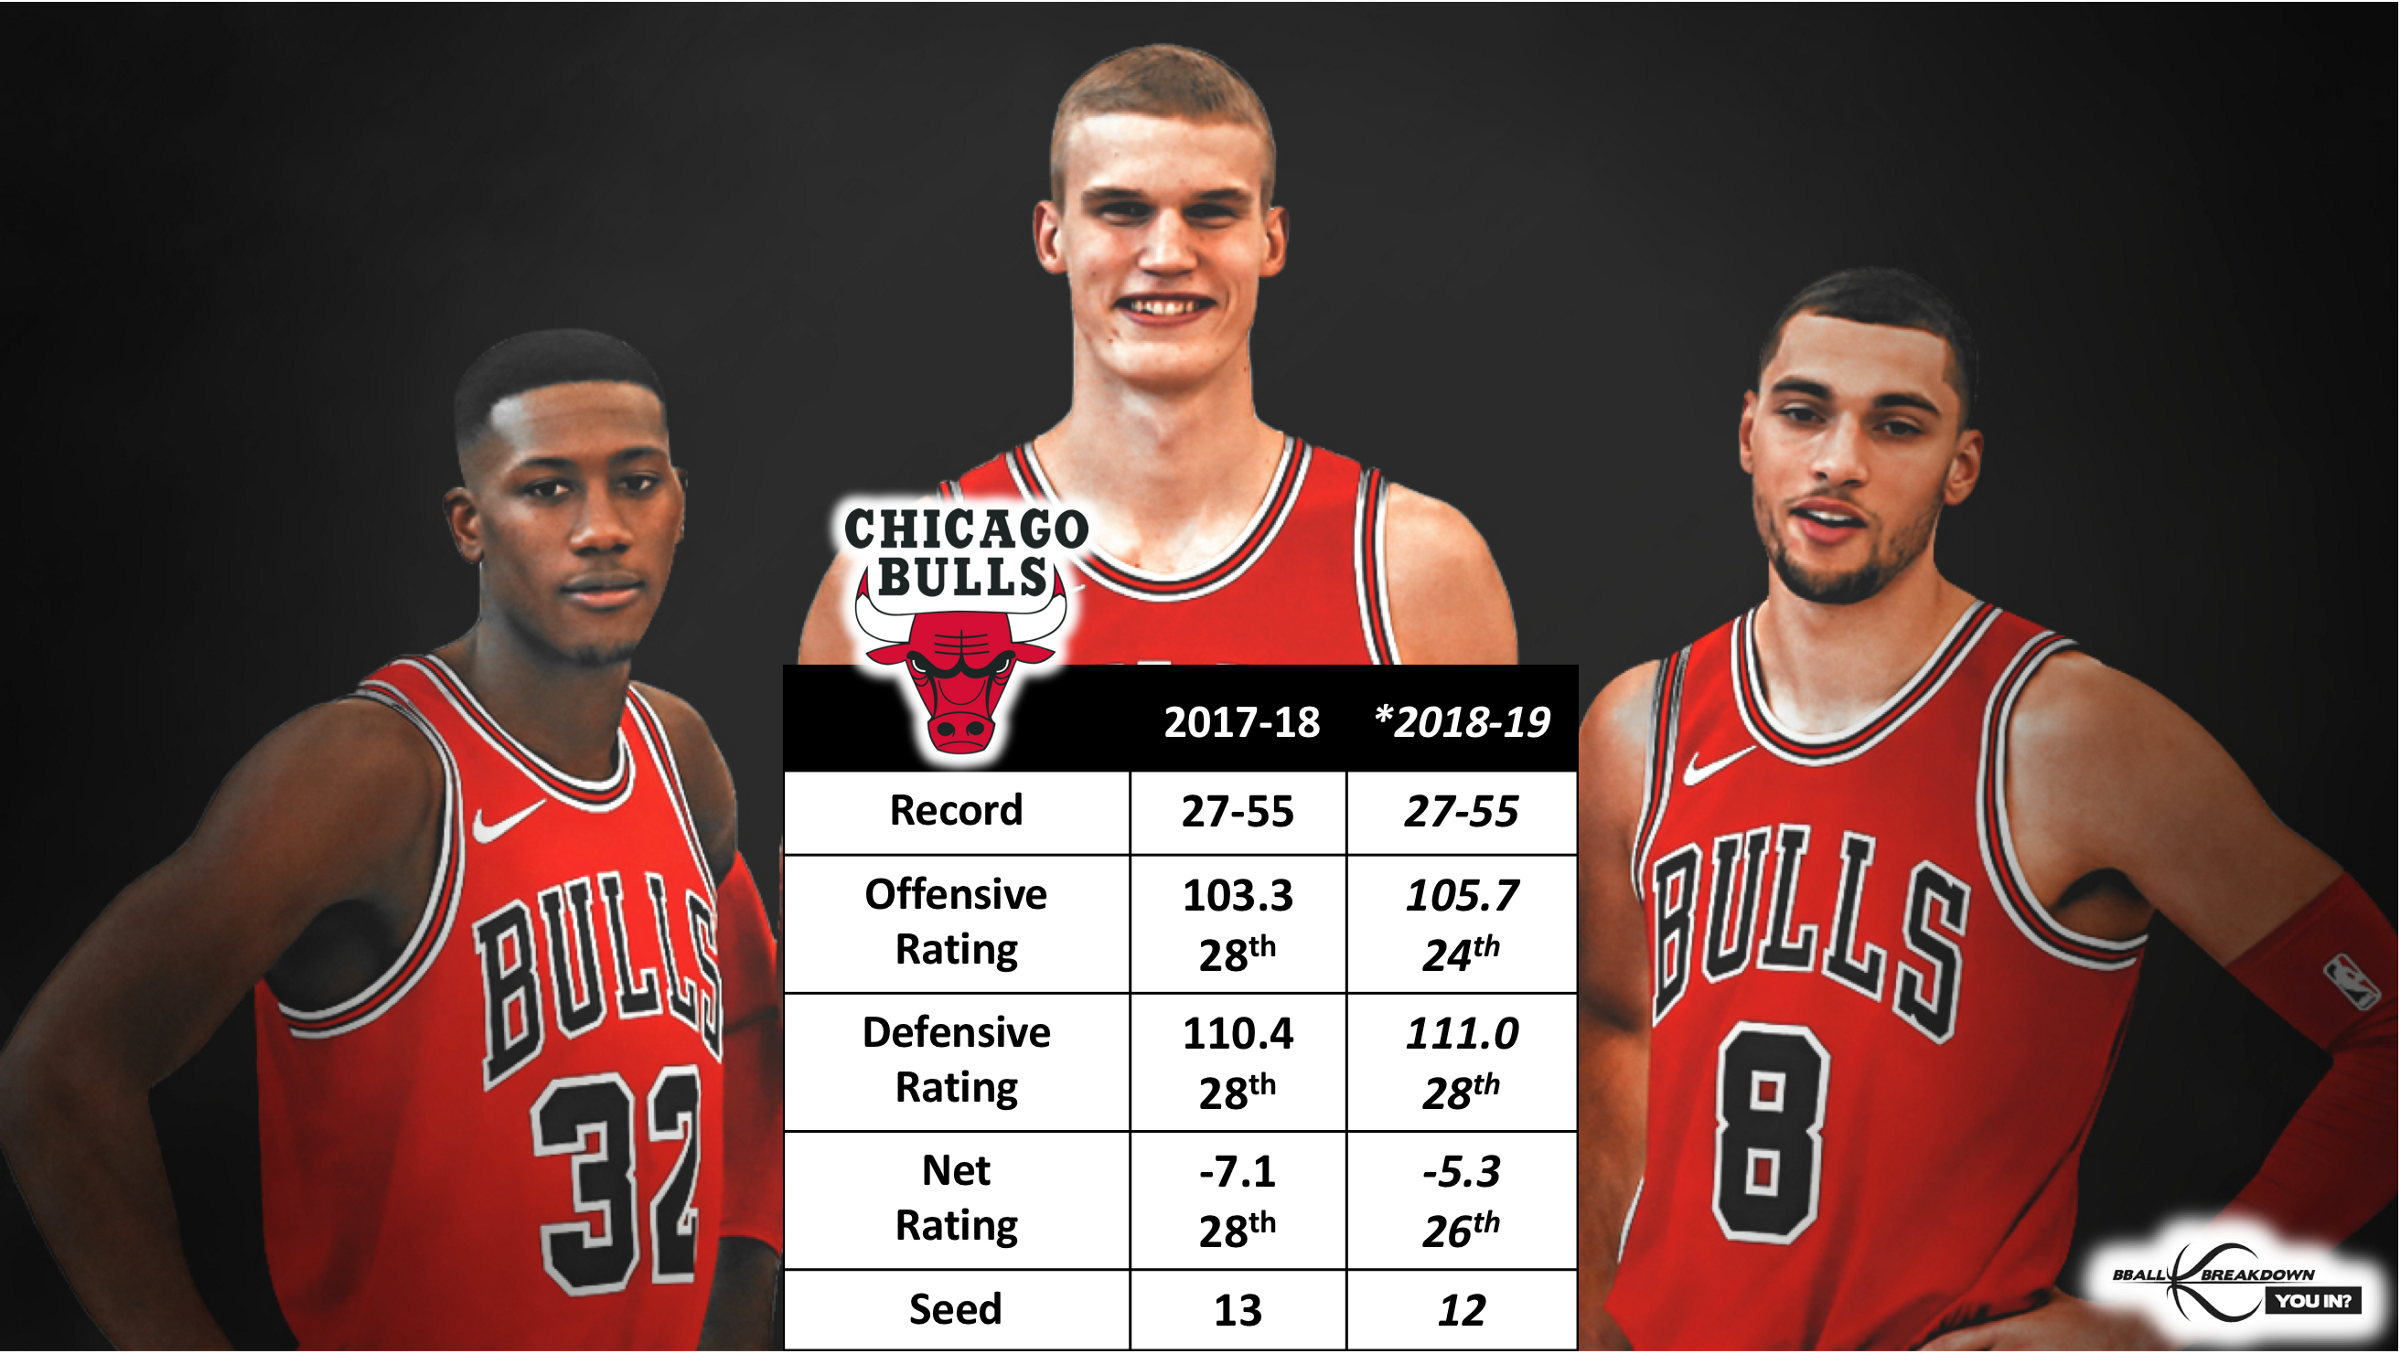 faae5f053 Chicago surrendered 110.4 points per 100 possessions last season and  finished above only Cleveland and Phoenix. Year two without Jimmy Butler  and the first ...